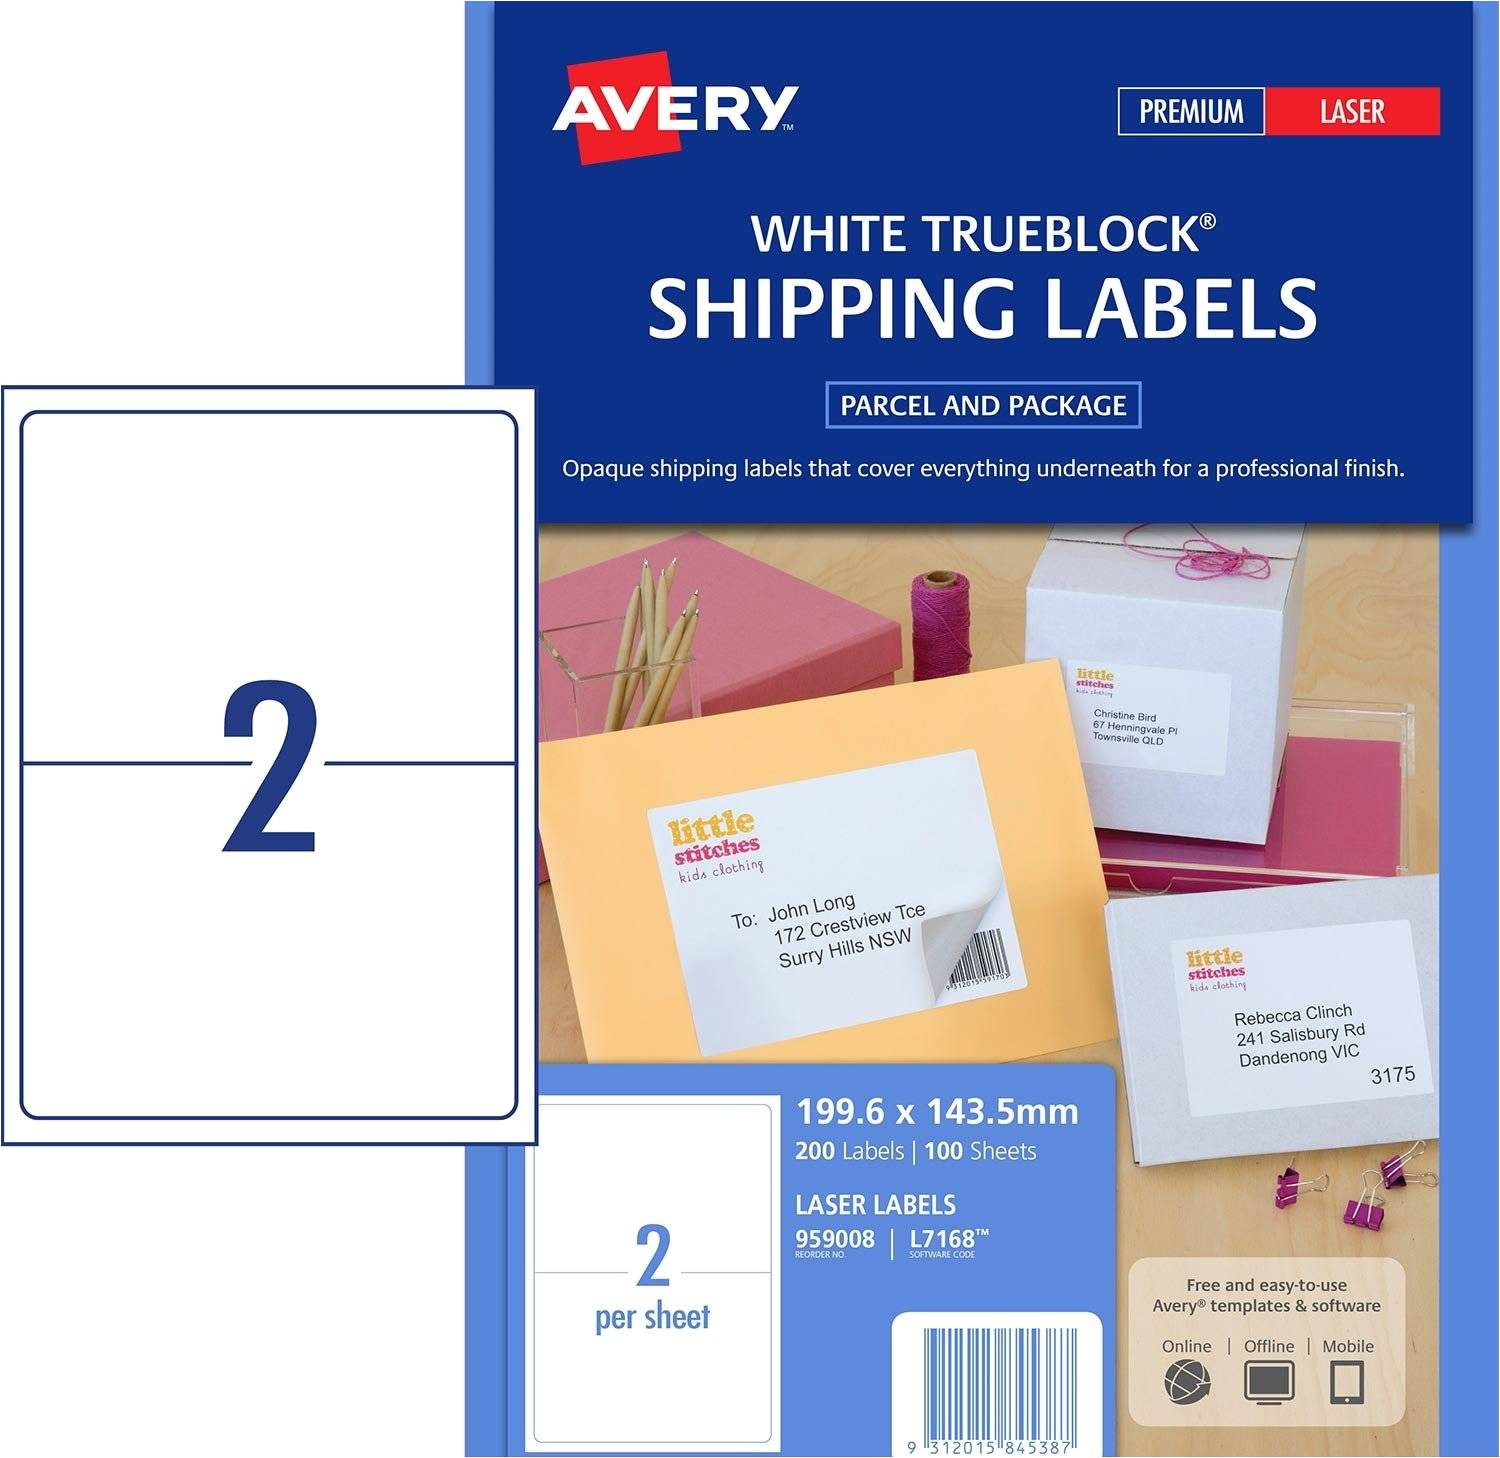 white trueblock shipping labels l7168 200 pack 199 6 x 143 5 mm 959008